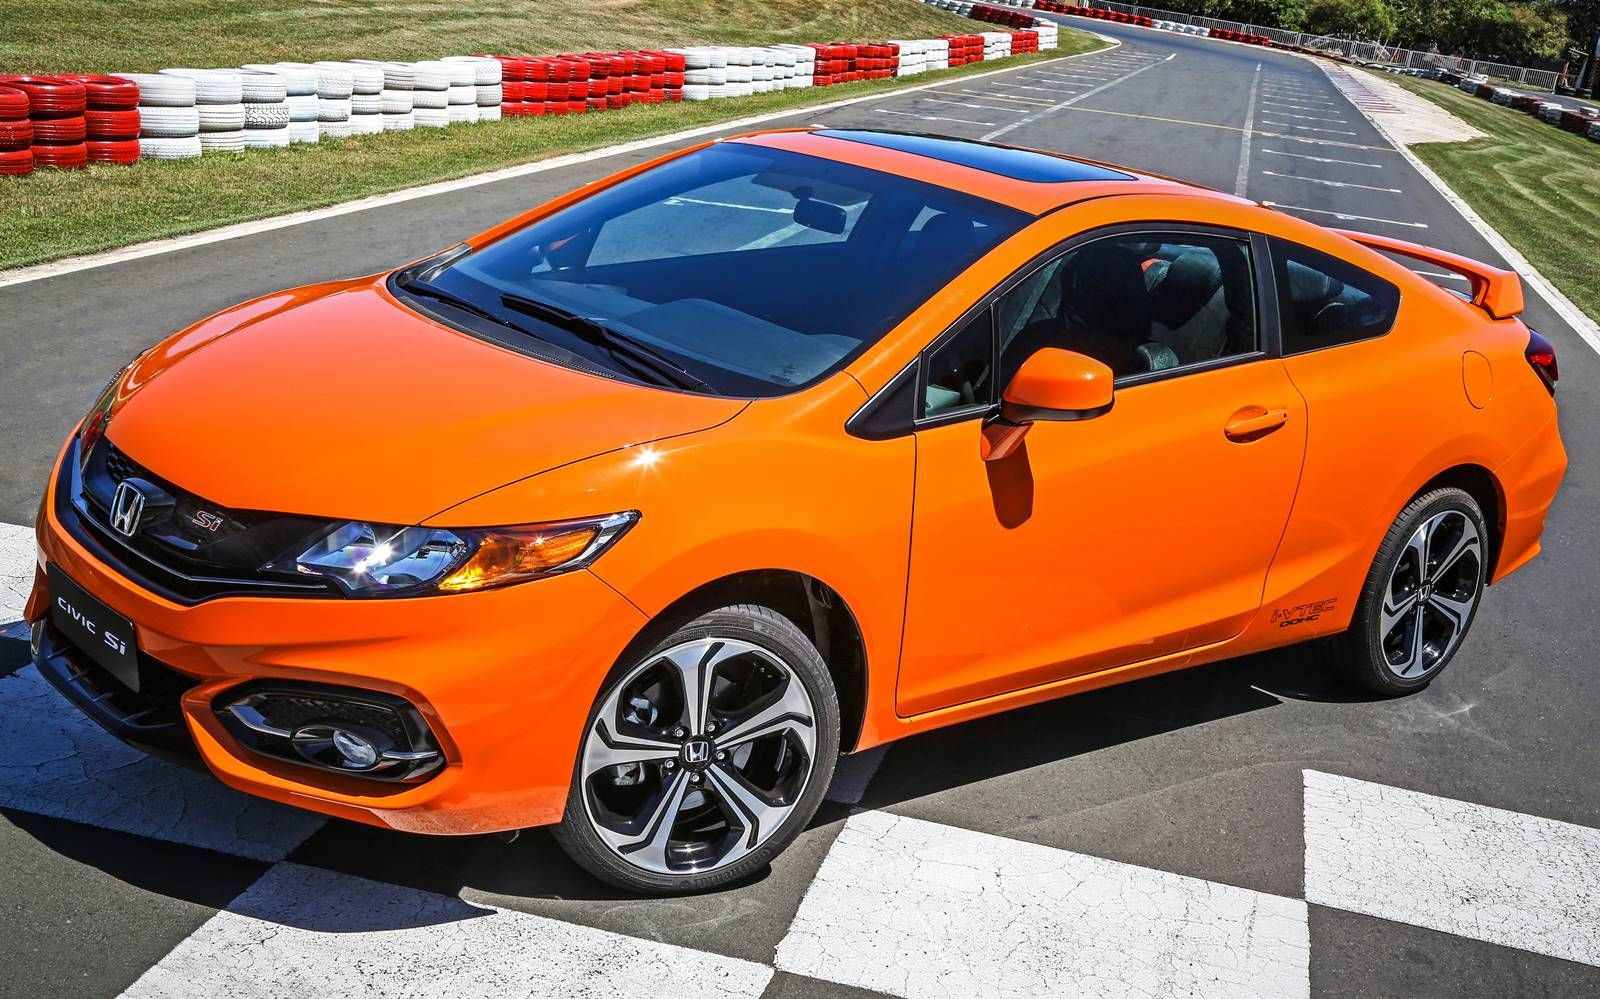 2015 Honda Civic Si Price Engine And Review Http 2015carsupdate Info 2015 Honda Civic Si Price Engine And Honda Civic Si 2015 Honda Civic Honda Civic Vtec